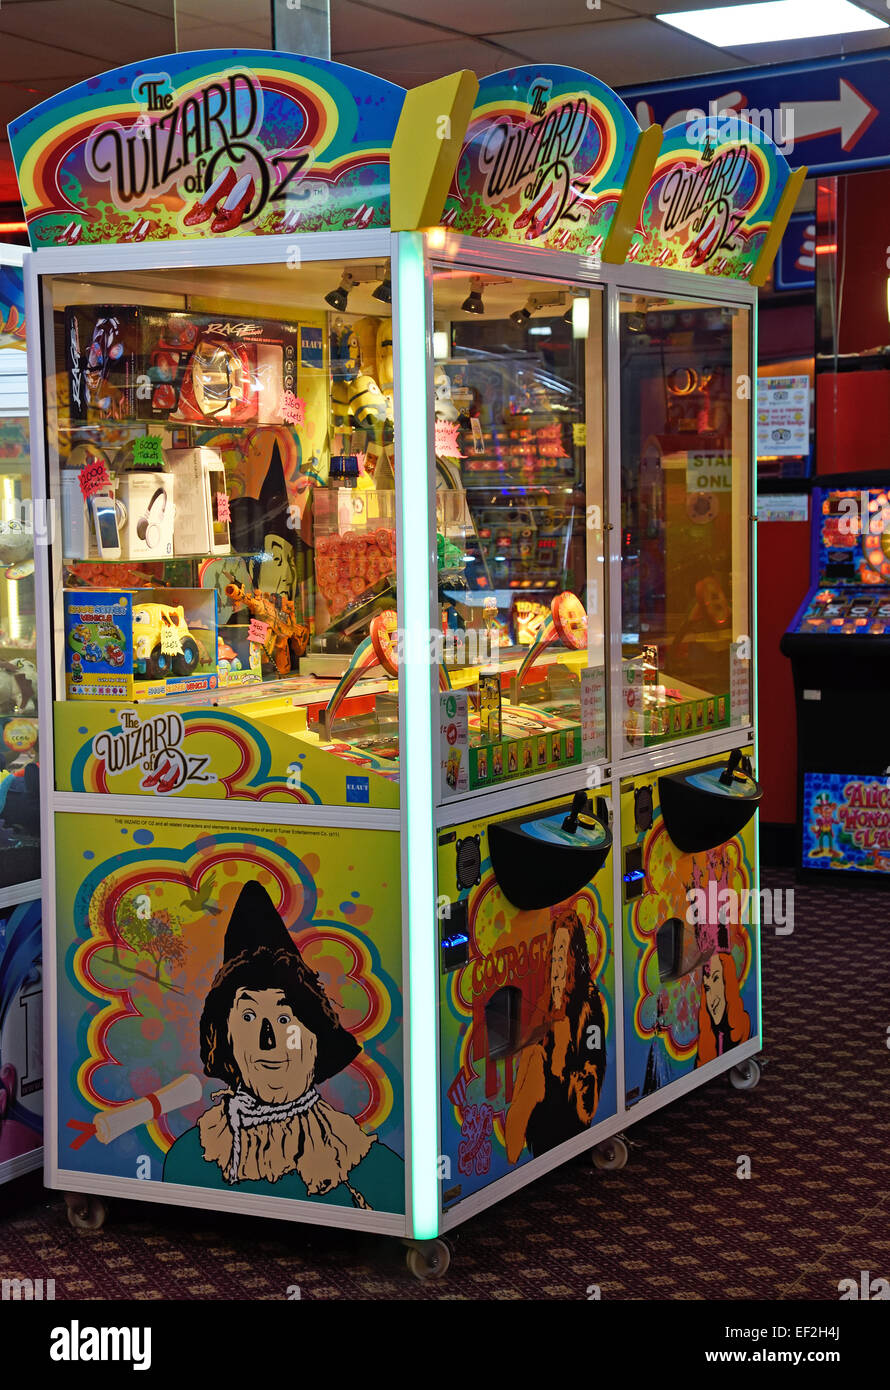 Wizard of Oz machine in seaside Amusement Arcade at Herne Bay, Kent. - Stock Image